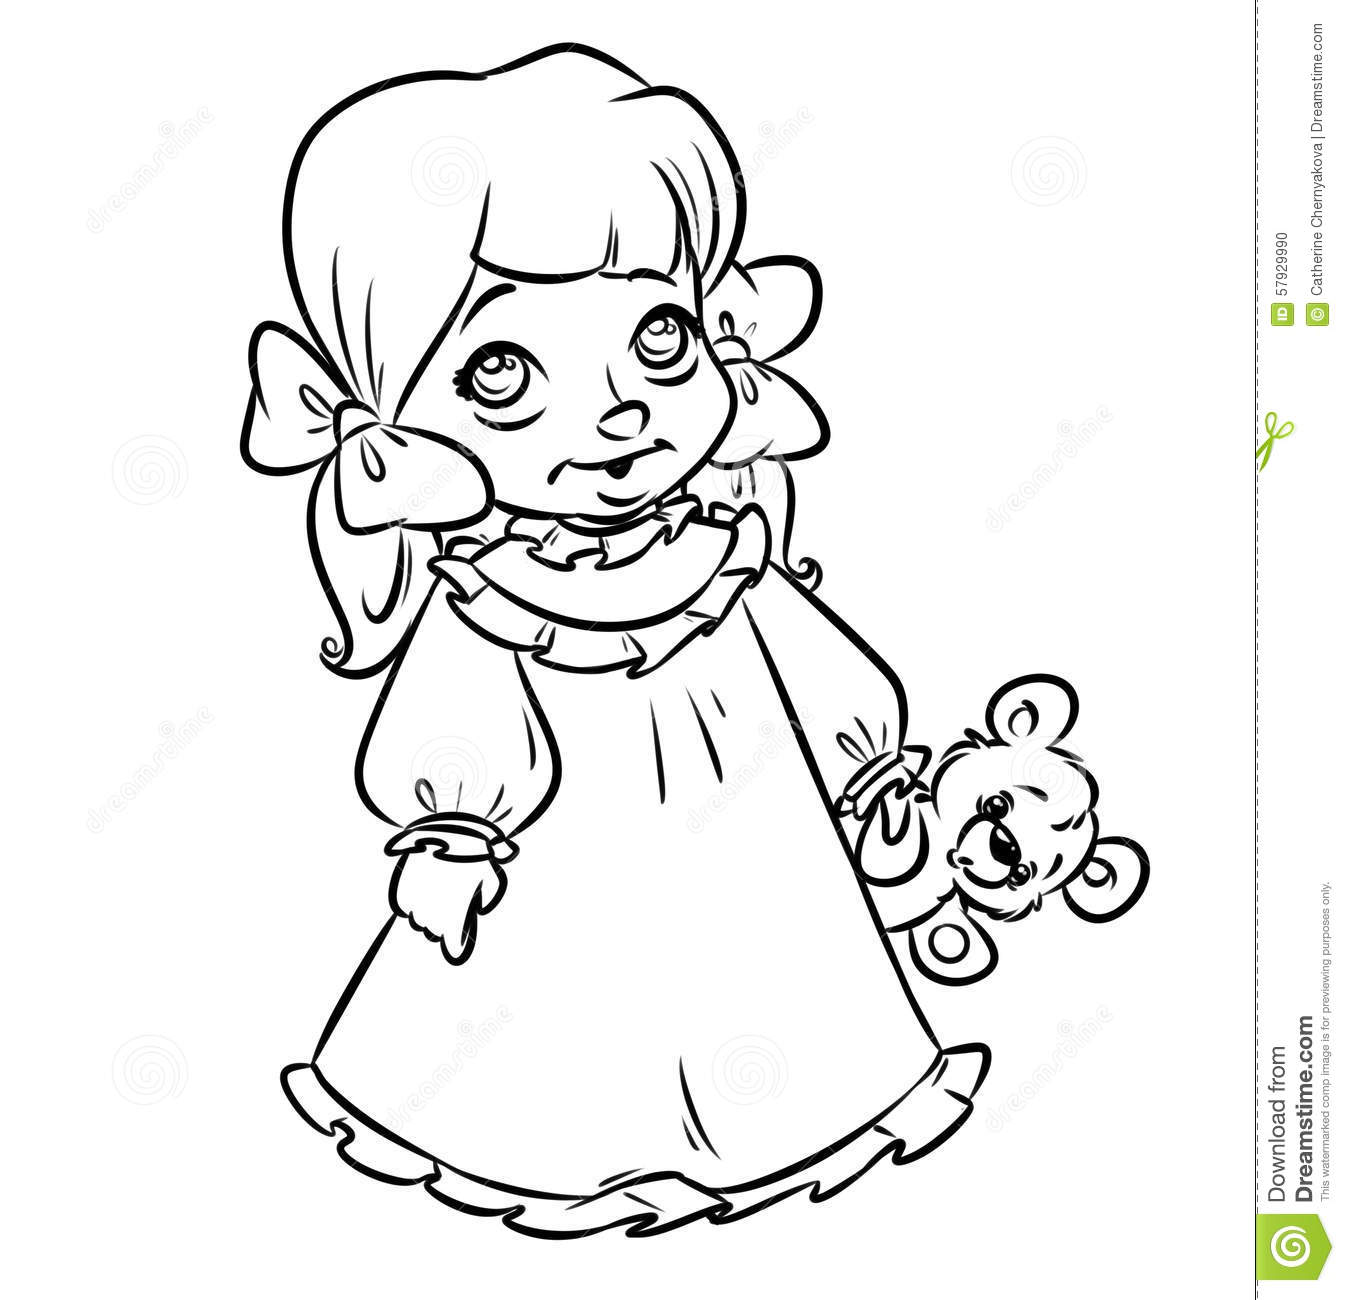 pajama theme coloring pages - photo#36